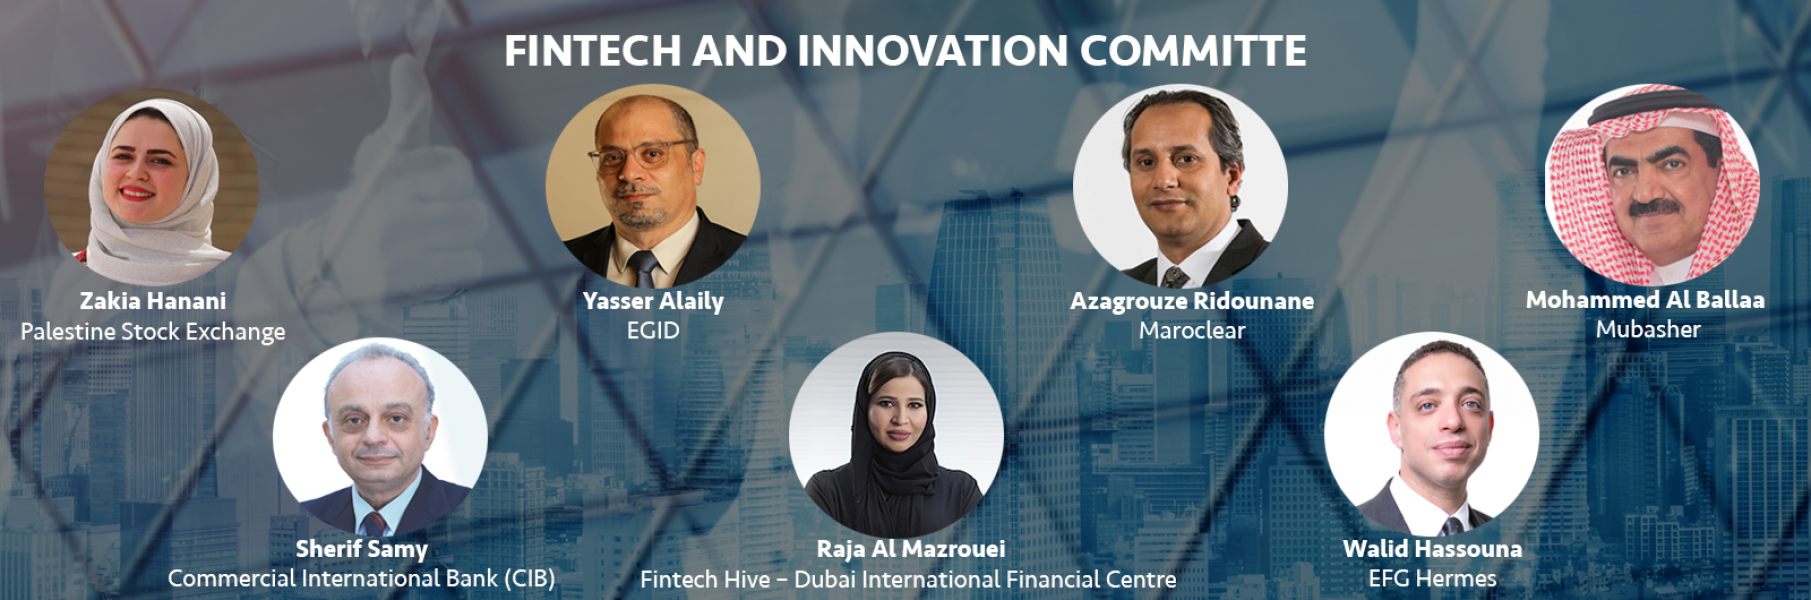 fintech and innovation committee copy